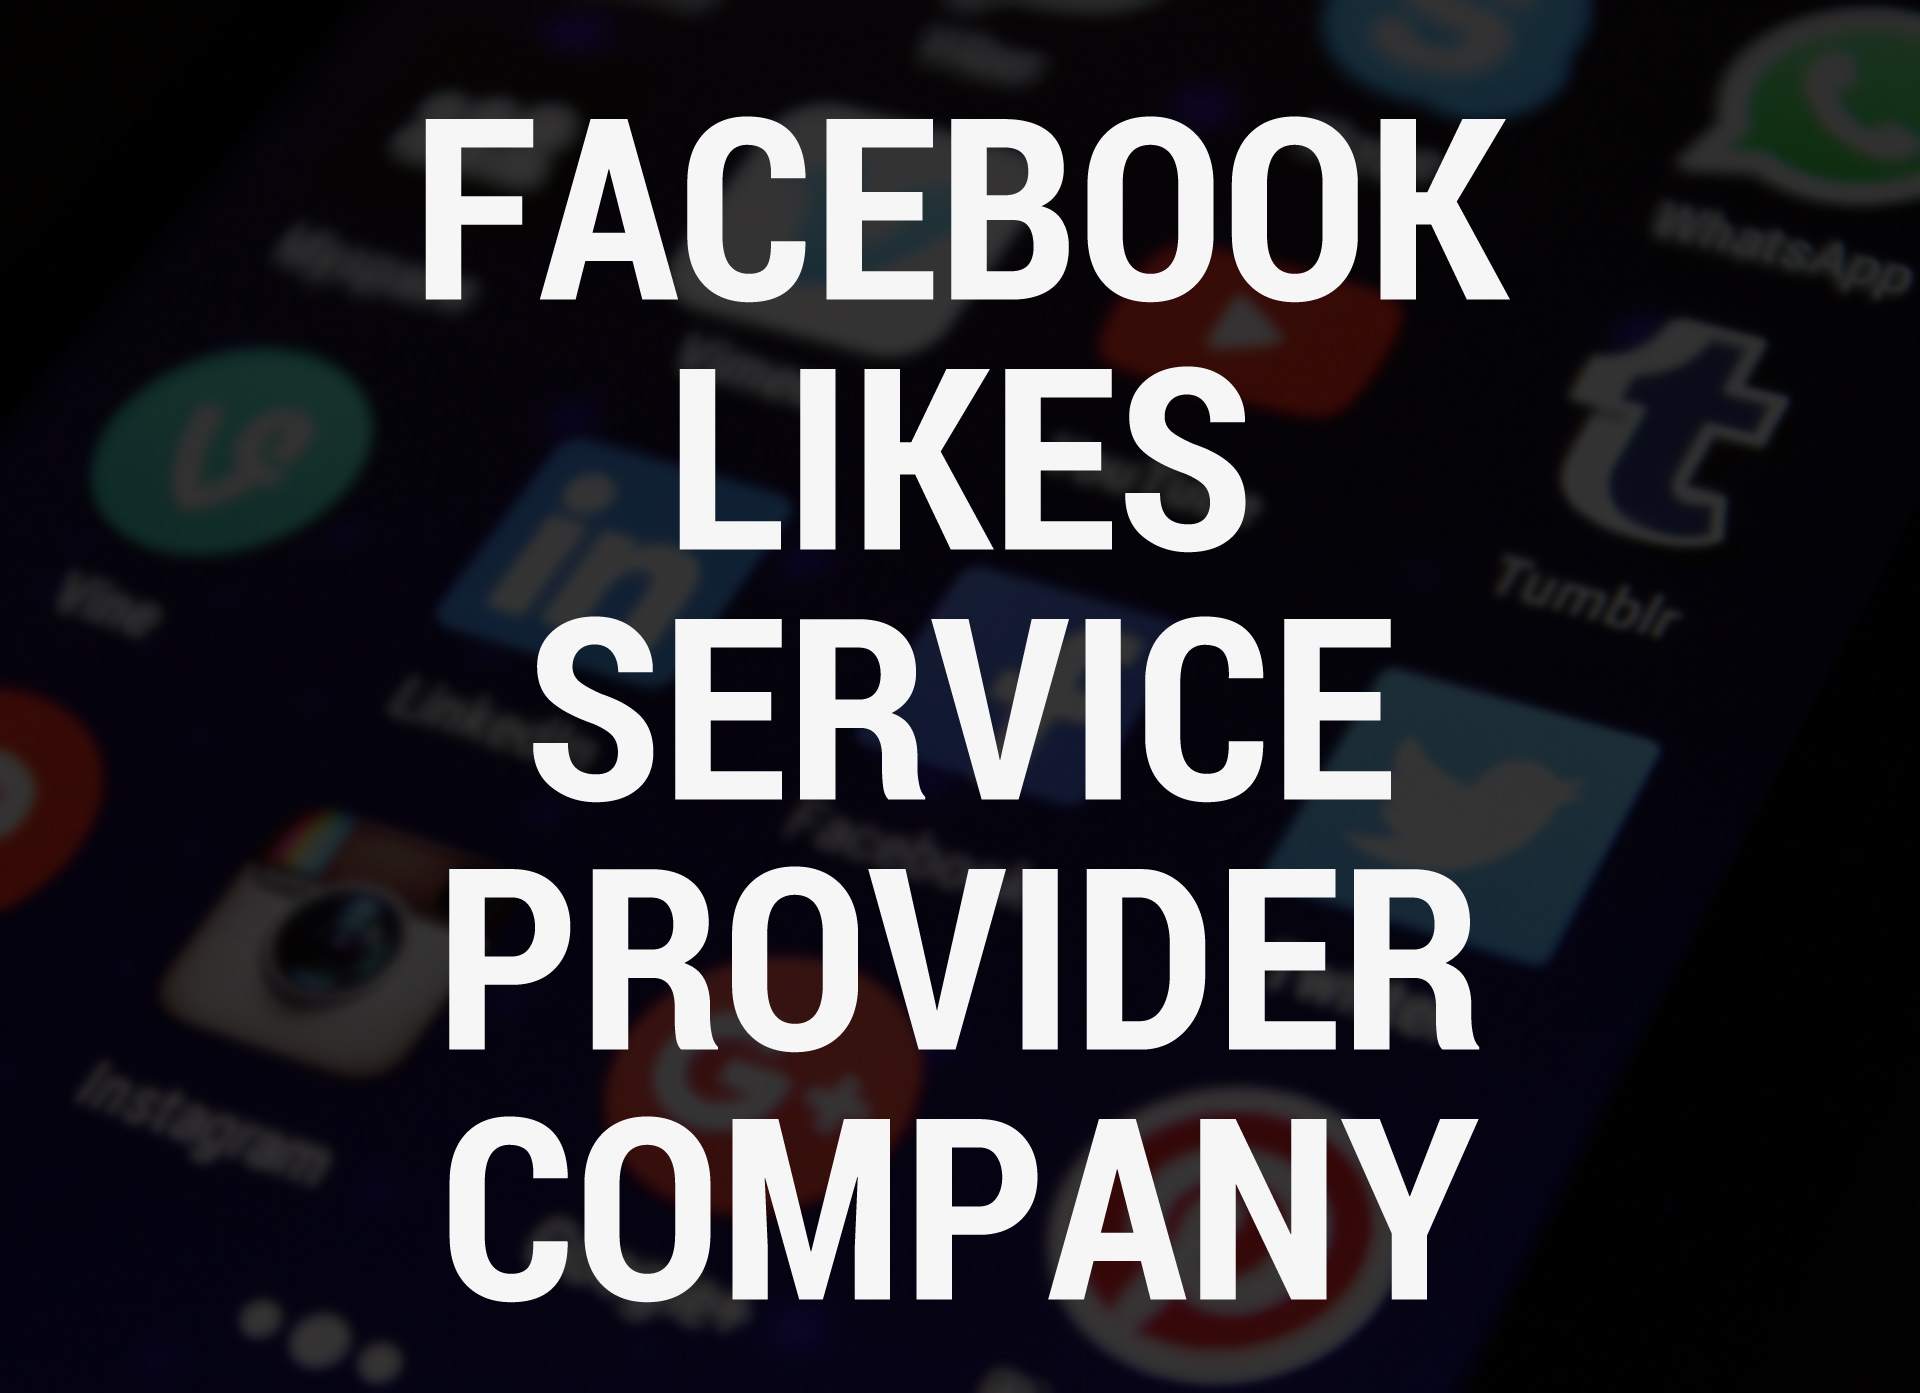 Facebook Likes Service